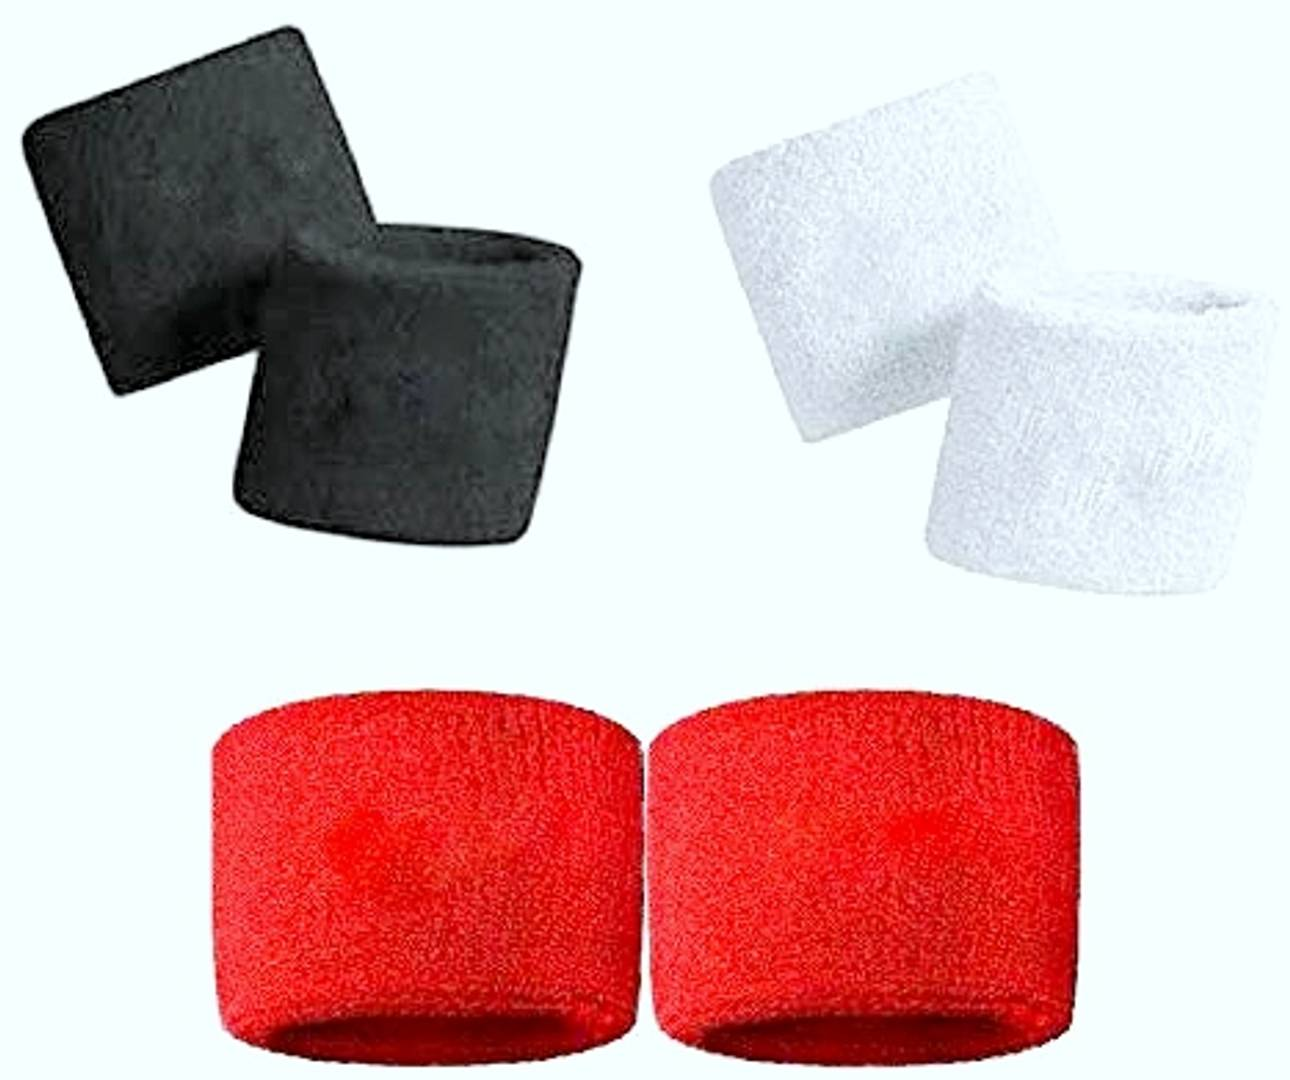 CASHWIN Sweatband Wrist Band/Wrist Support for Gym and Sports Activities (Red, Black, and White) 3-Pair